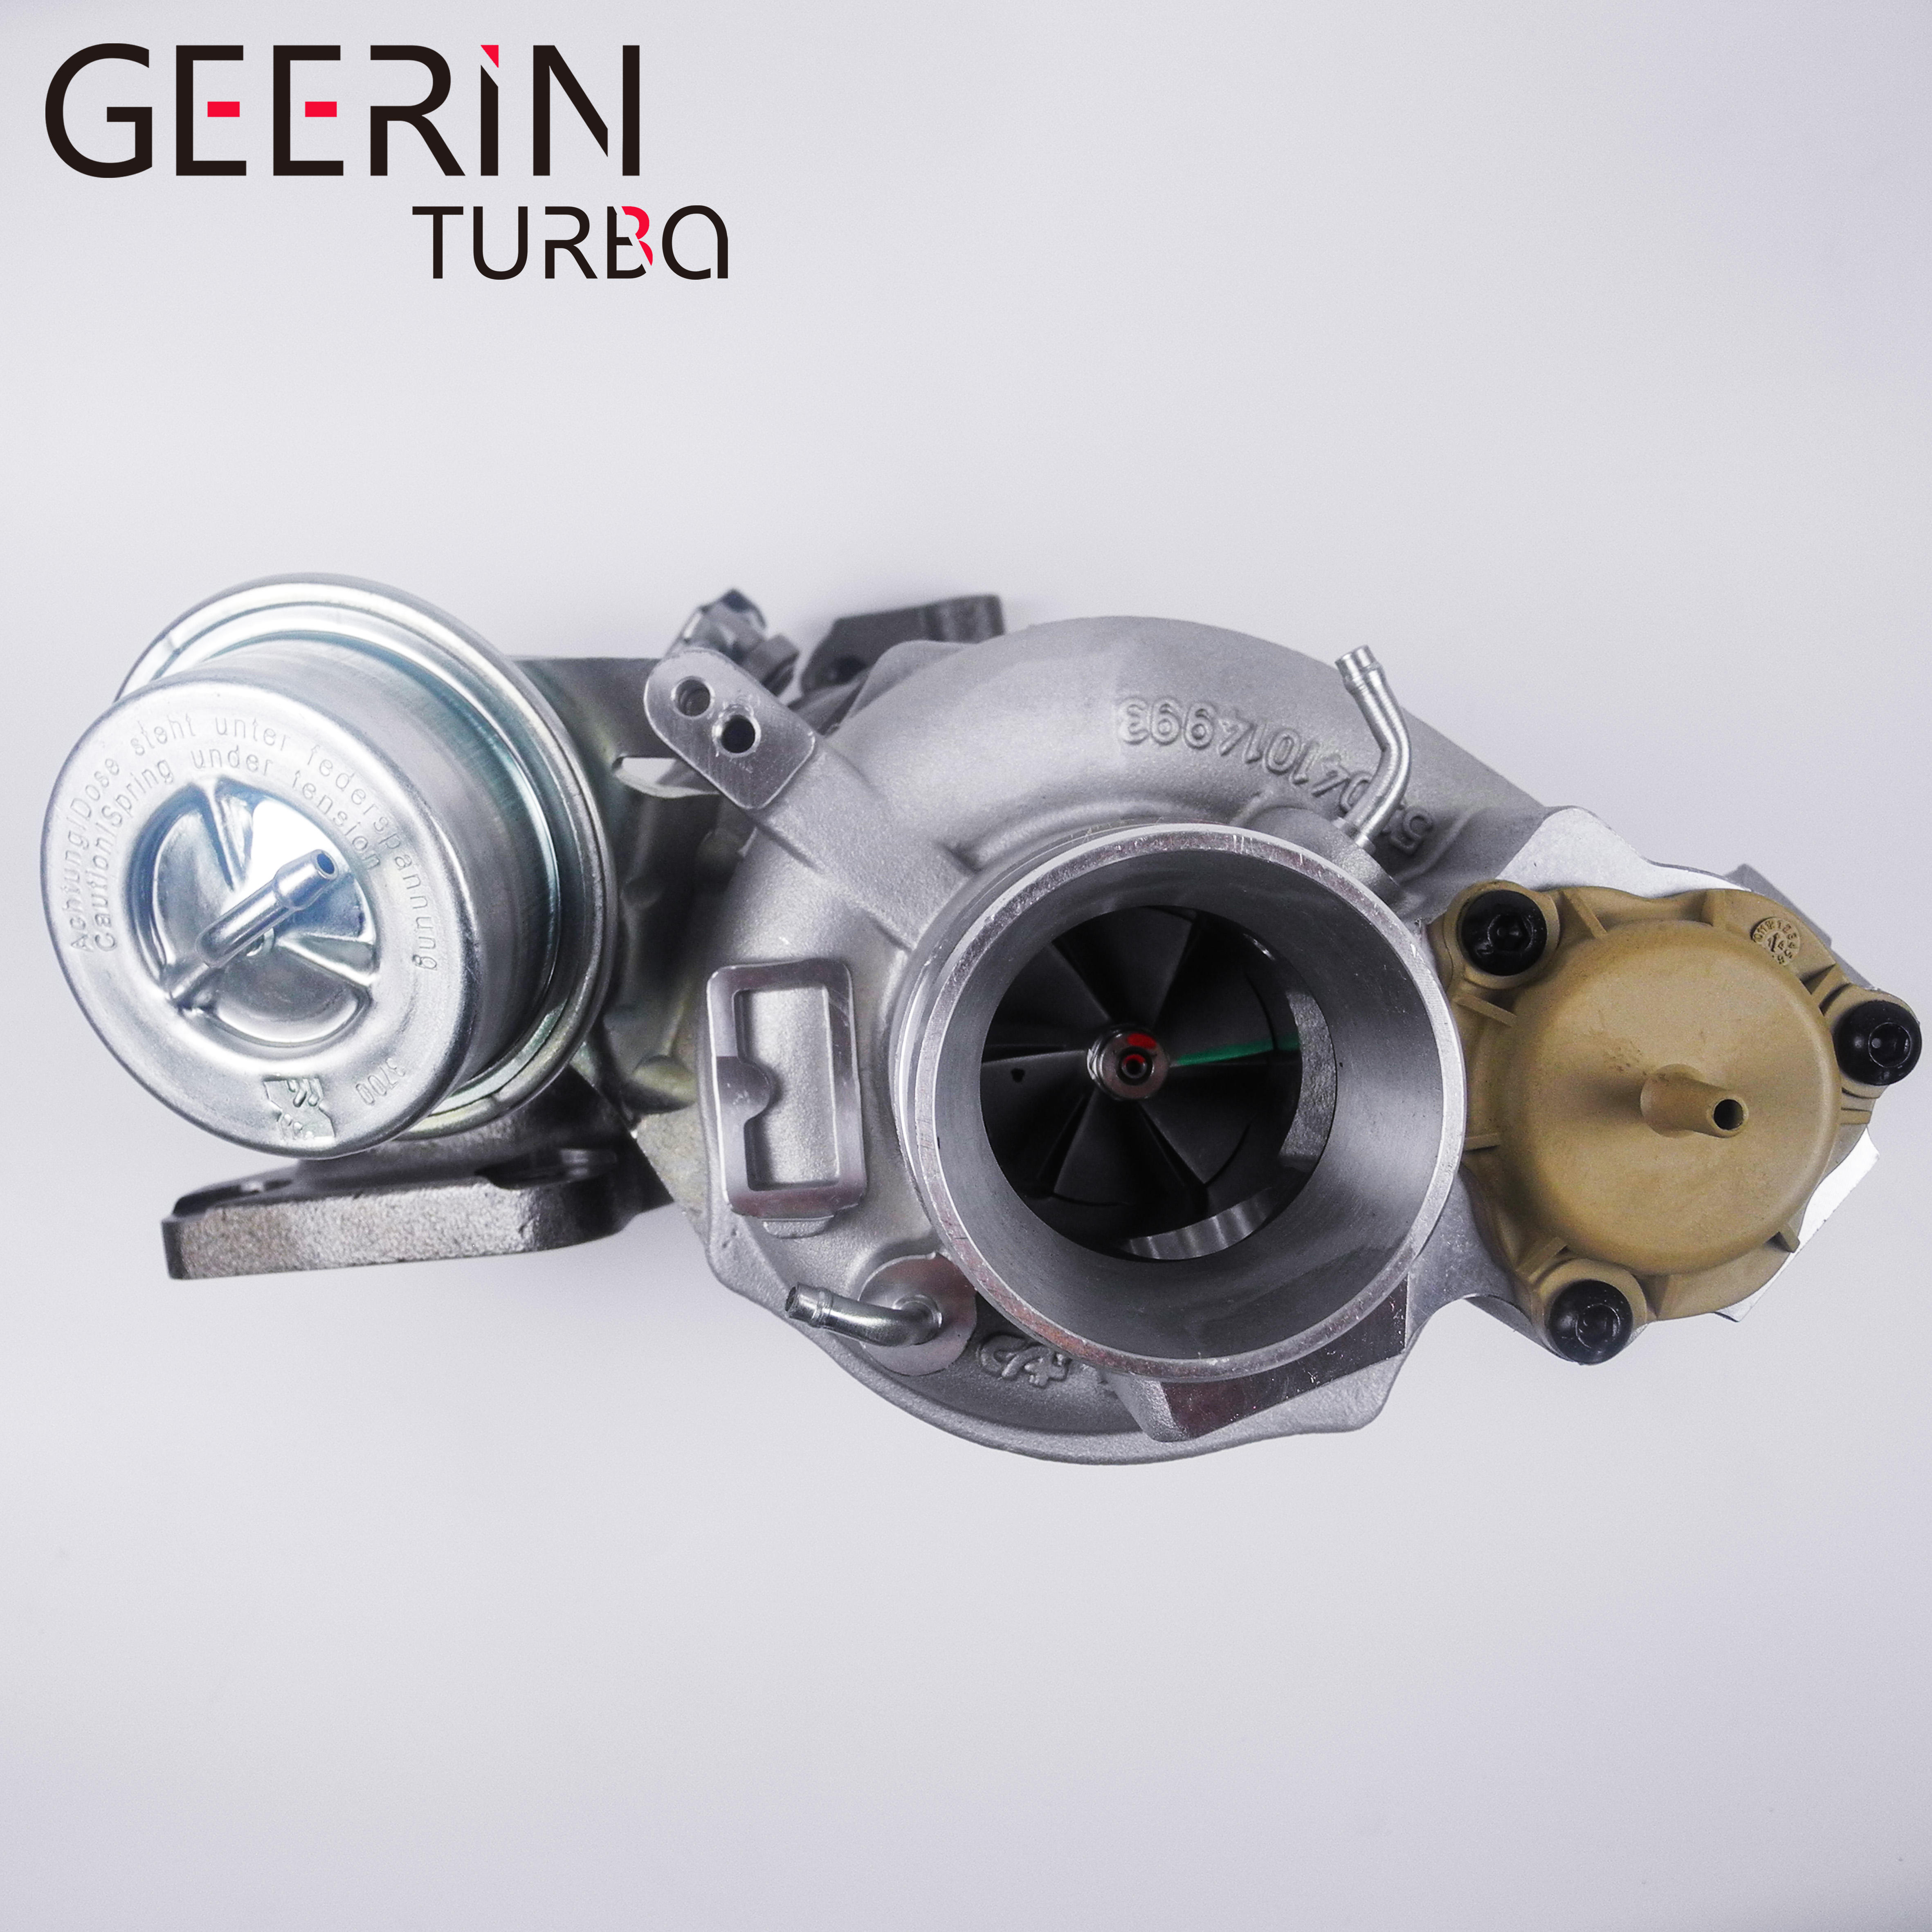 turbo from factory K04 53049880059 53049880200 860224 for Insignia 2.0 Turbo A20NHT 1998 ccm 162 Kw - 220 HP